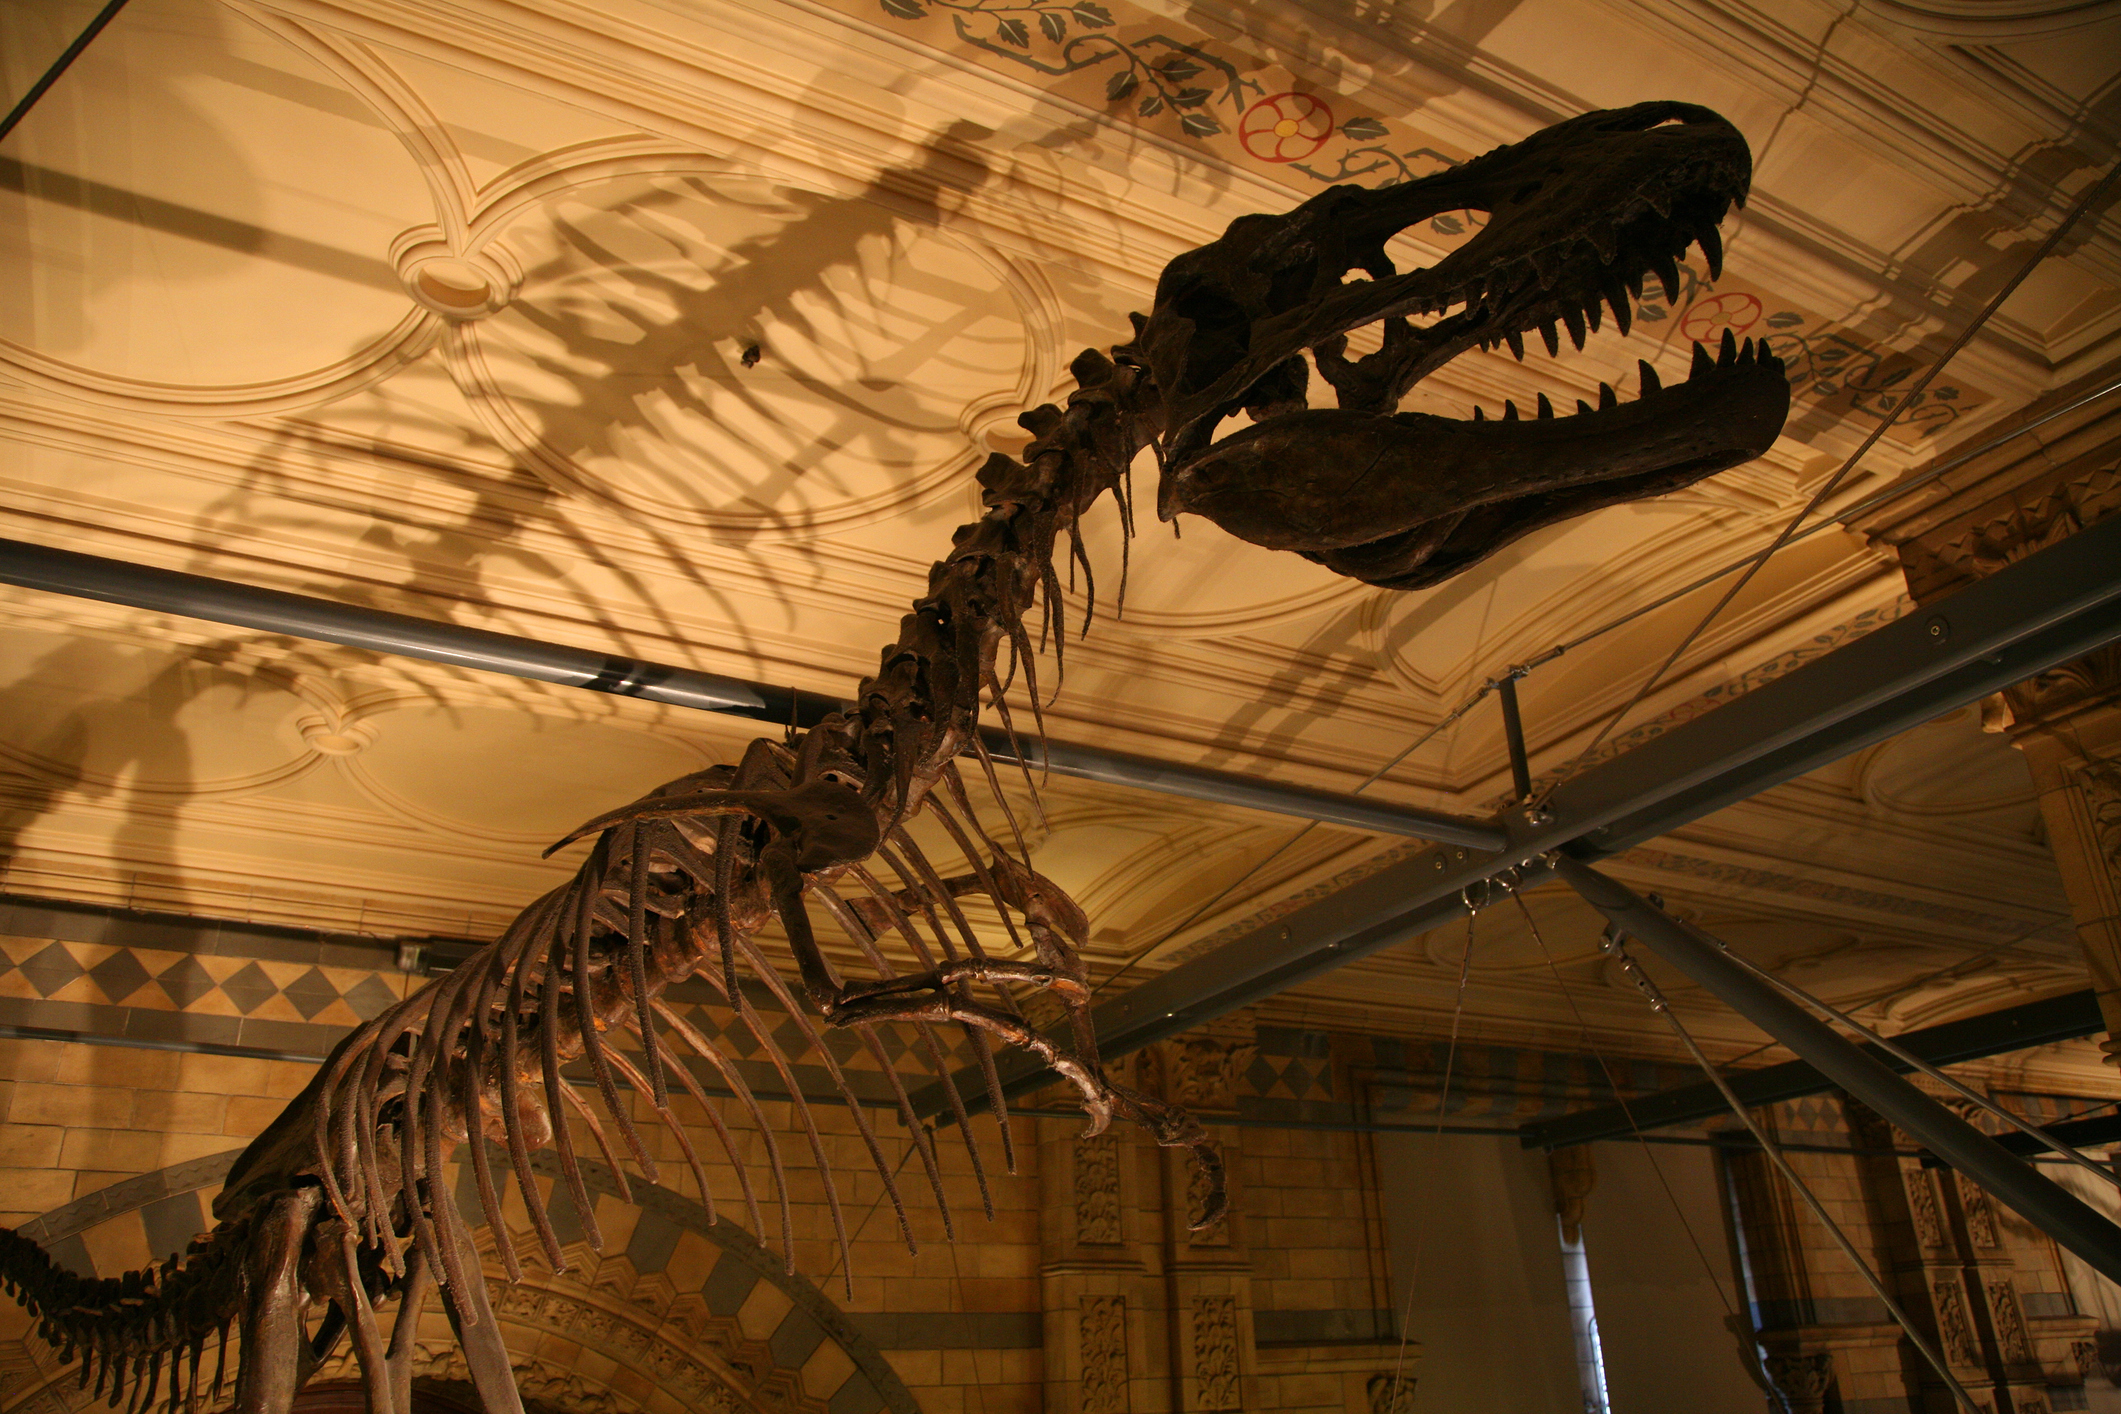 The Dinosaur gallery at the Natural History Museum. London . Image: Feargus Cooney